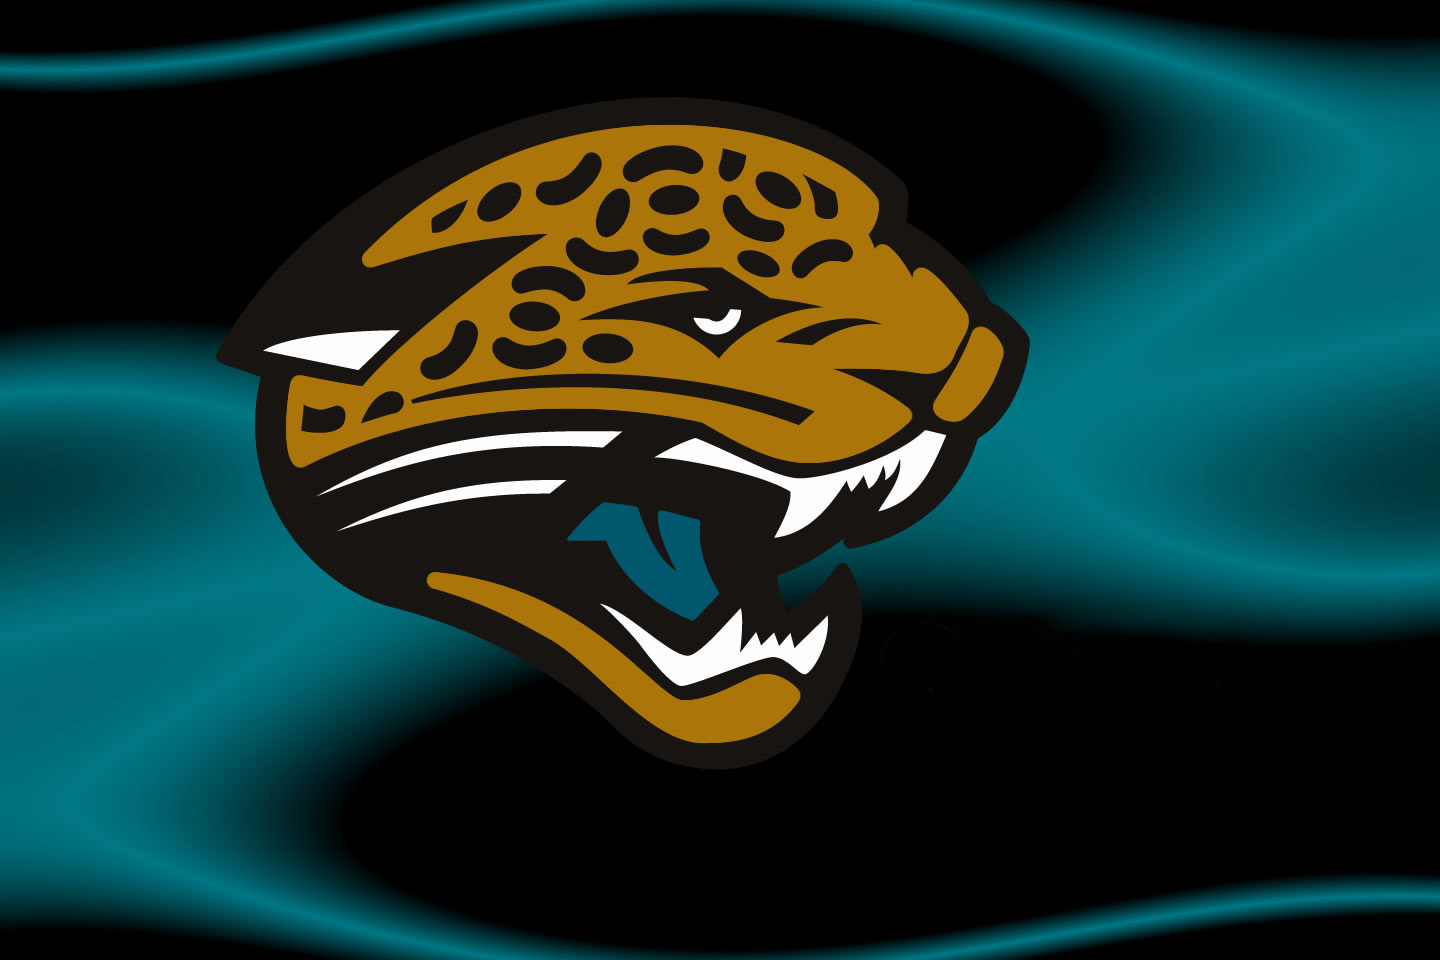 Hd Wallpapers Jacksonville Jaguars Logo 1800 X 1200 497 Kb Jpeg HD 1440x960